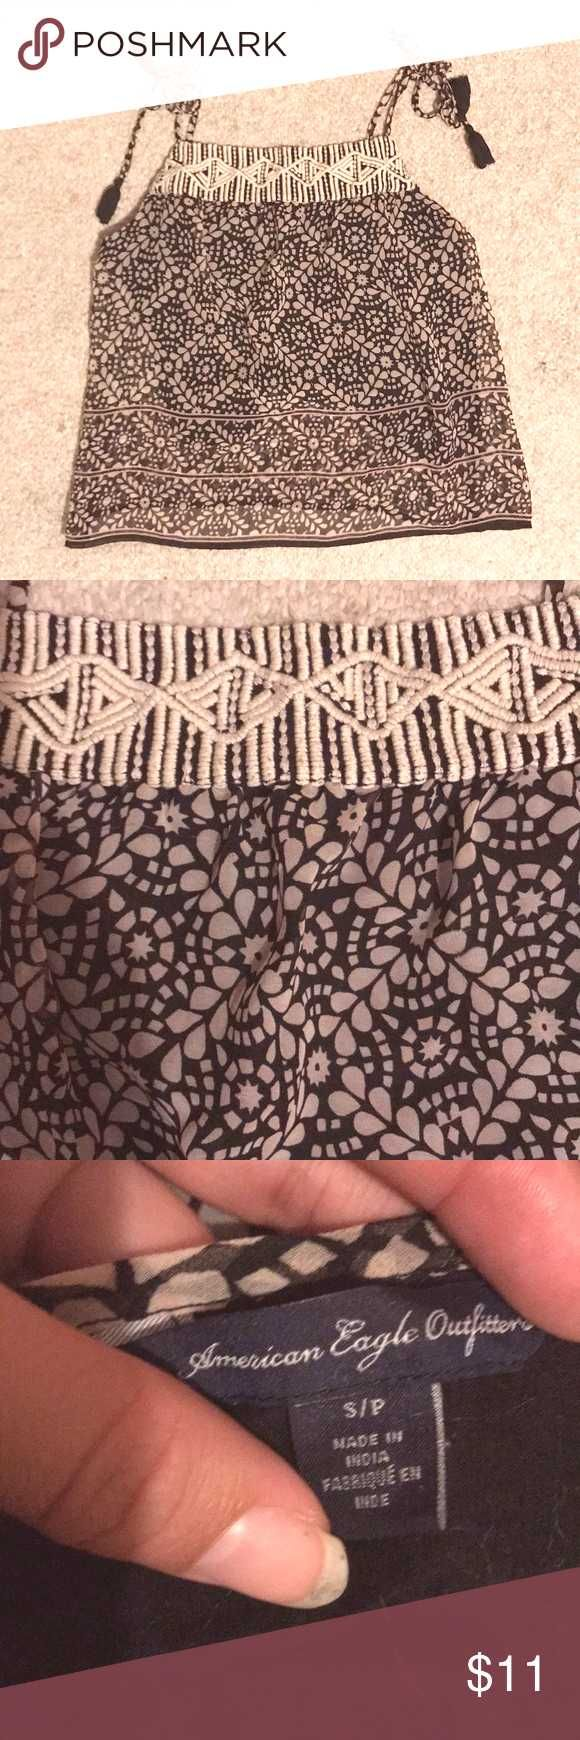 #anthropologie #embroidered #outfitters #american #perfect #topshop #people #summer #eagle #zara #free #tank #tops #for #top American eag...